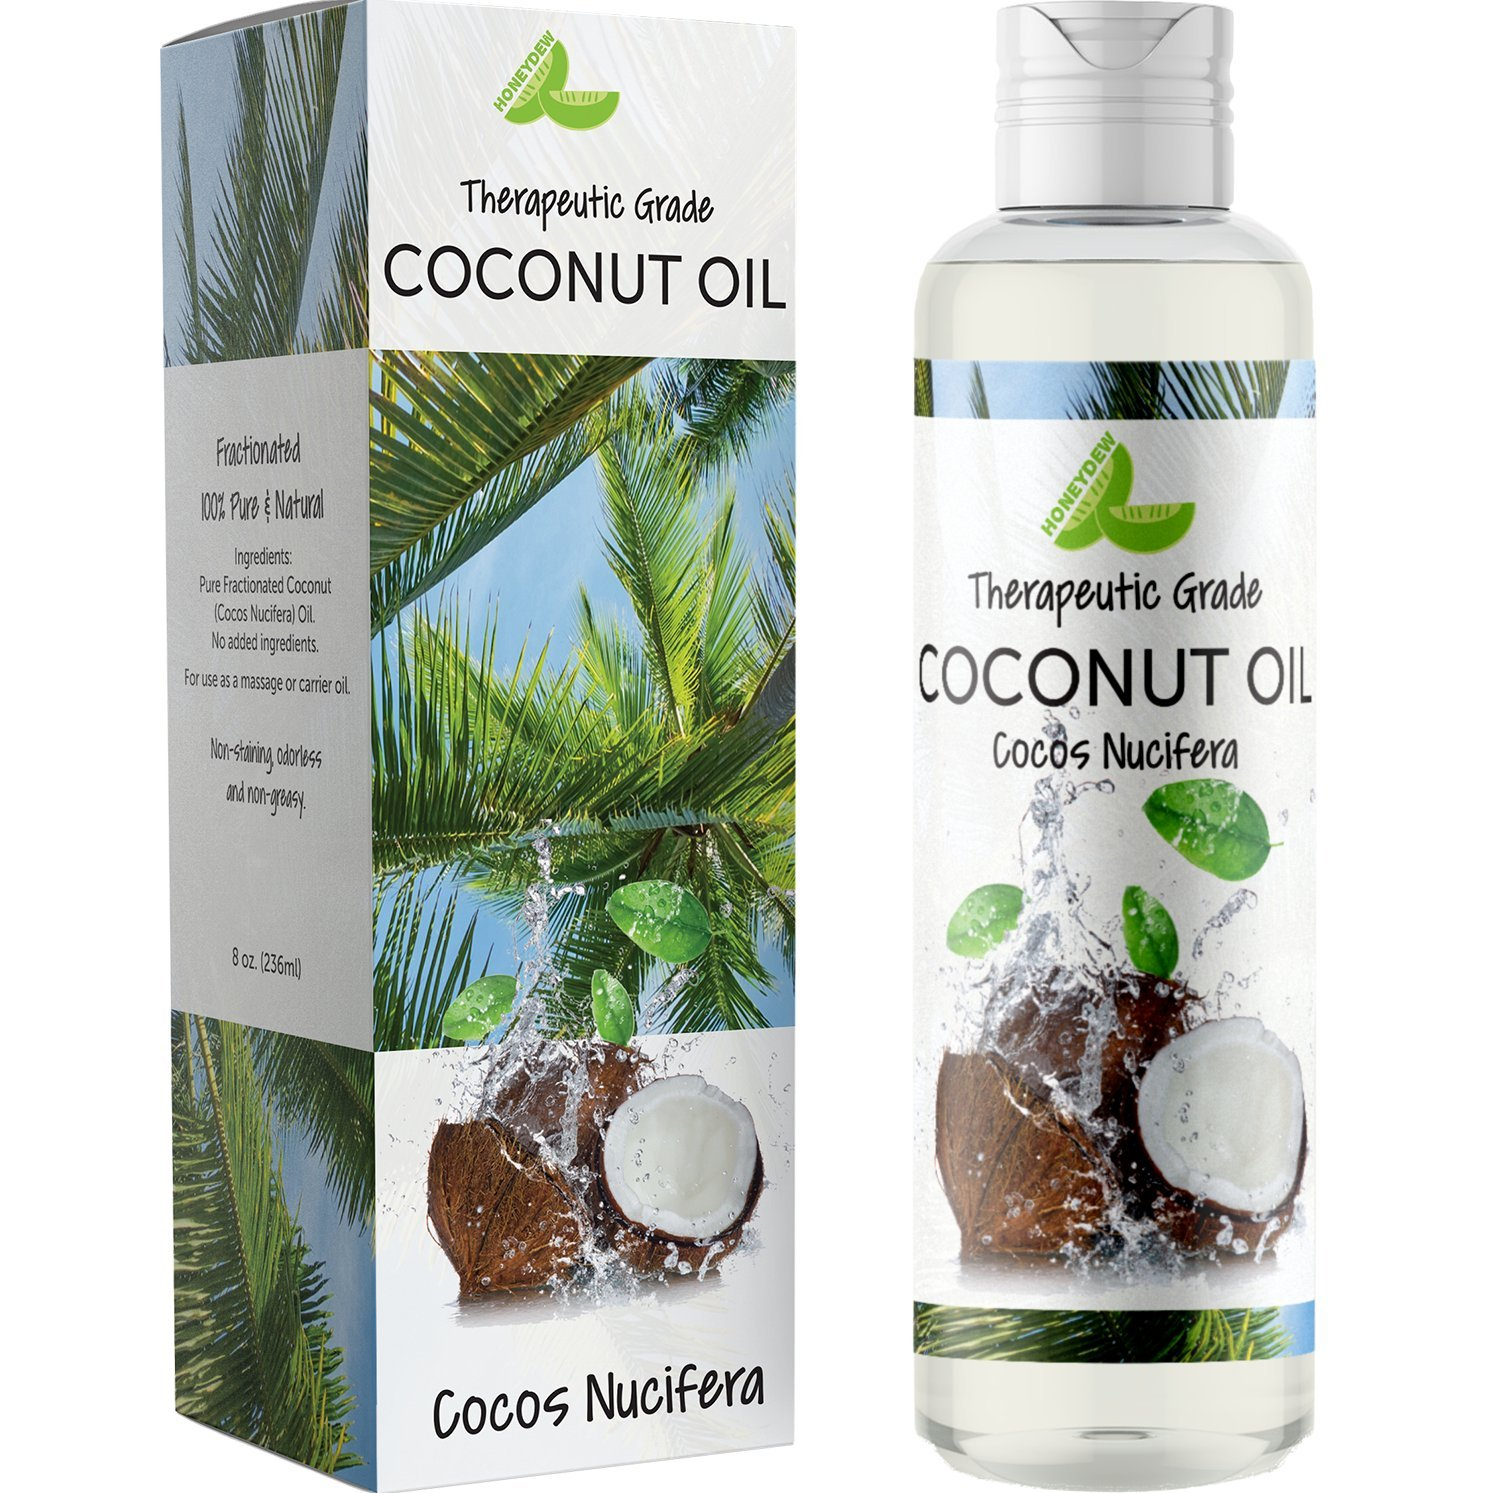 Coconut Oil for Skin Care – Pure Fractionated Coconut Oil for Hair Growth for Women & Men – Sensual Massage Oil with Aromatherapy Benefits – Paraben Free – Cruelty Free – 8oz by Honeydew